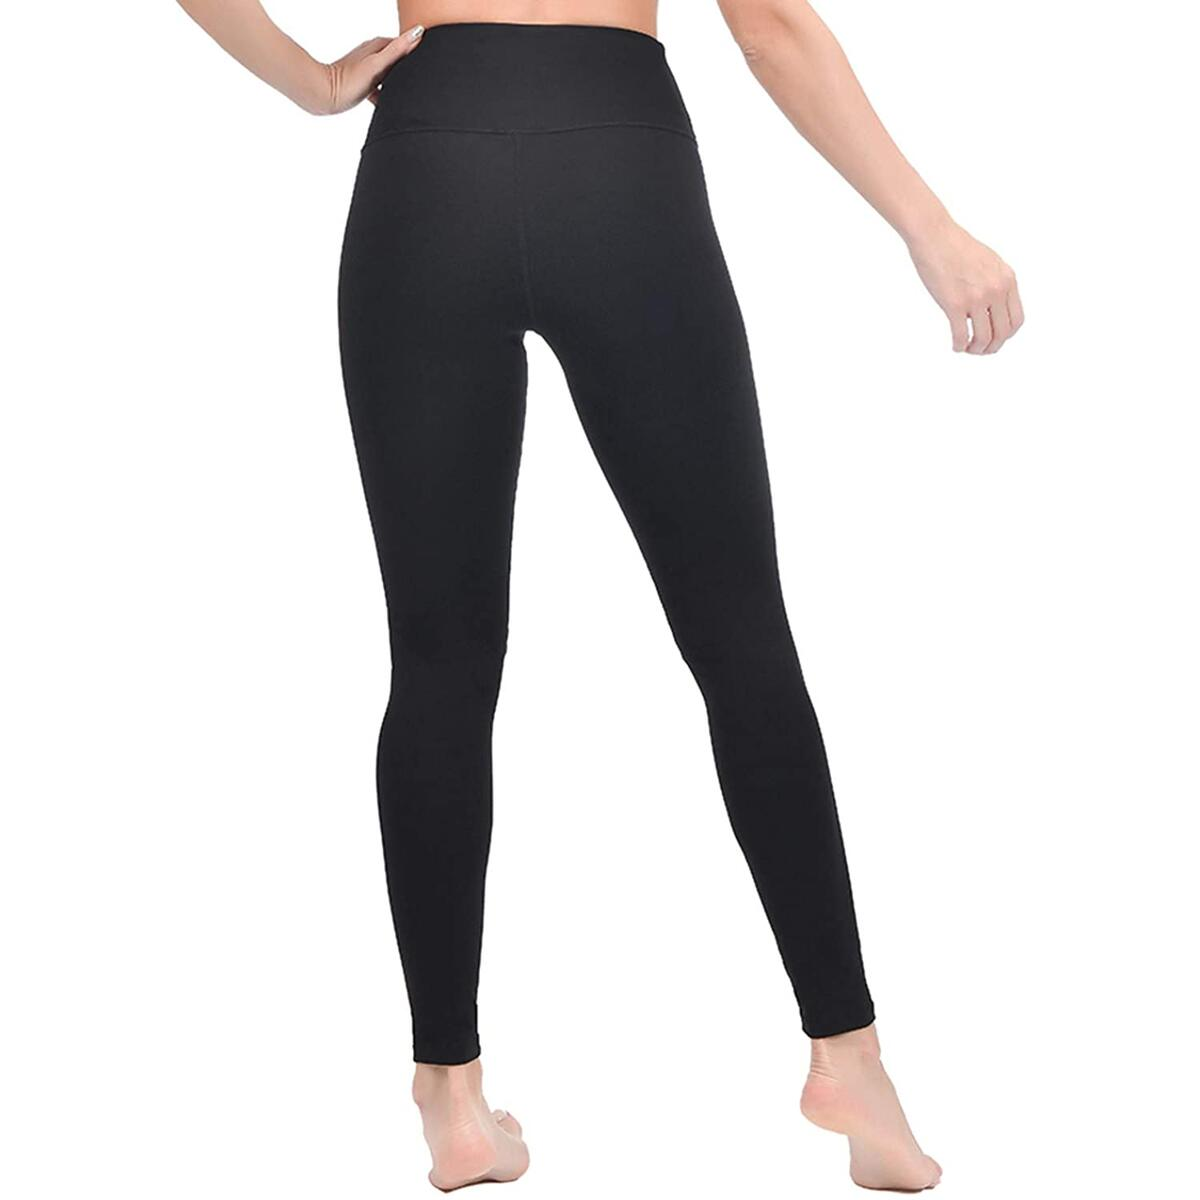 GG&Z Workout Leggings  size s-xxl (any size and color)